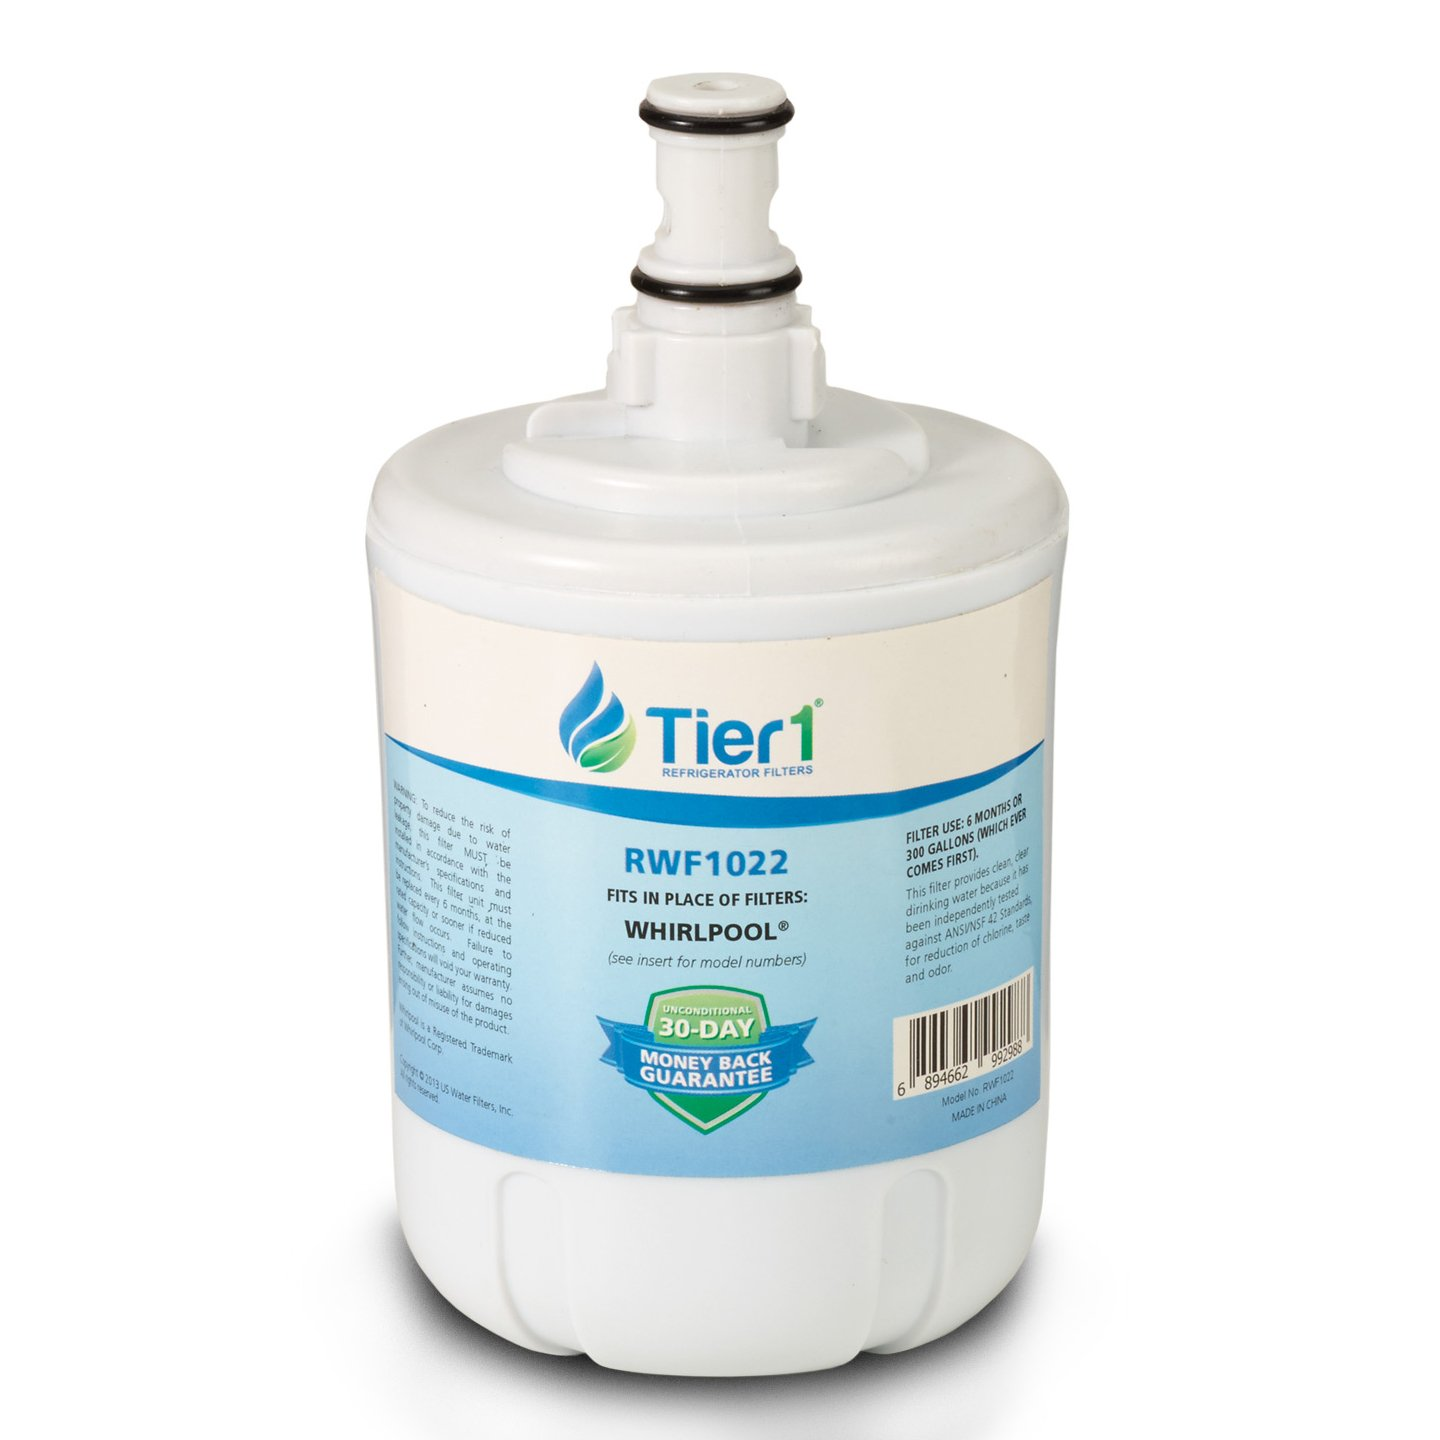 Amazon.com: Tier1 8171413 Replacement for Whirlpool 8171413, Kenmore ...